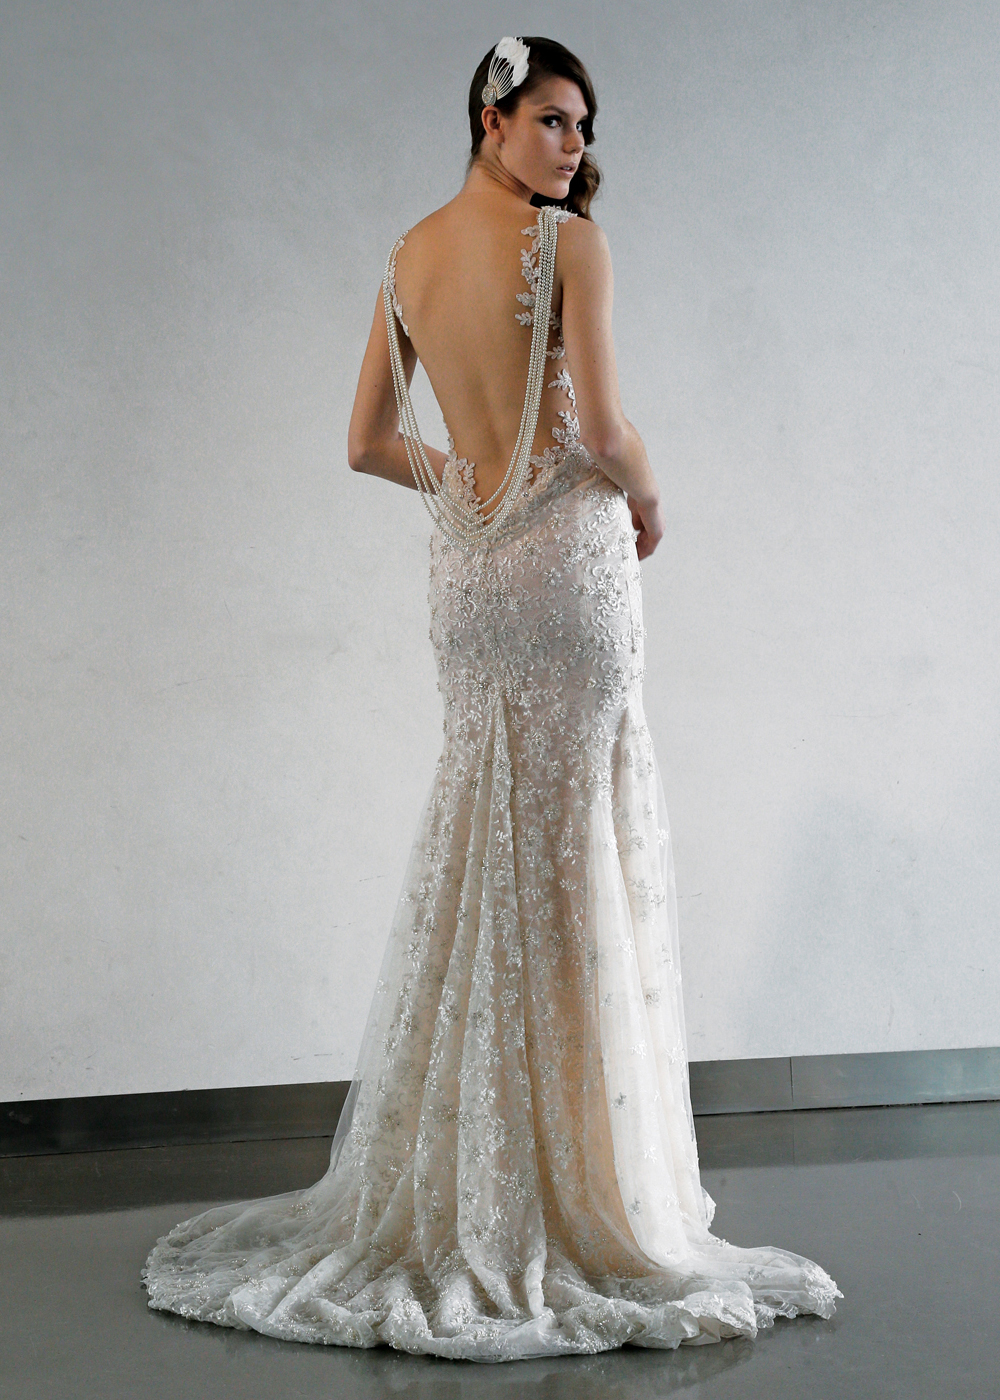 Galia Lahav Glamorous Backless Fit To Flare Wedding Gown